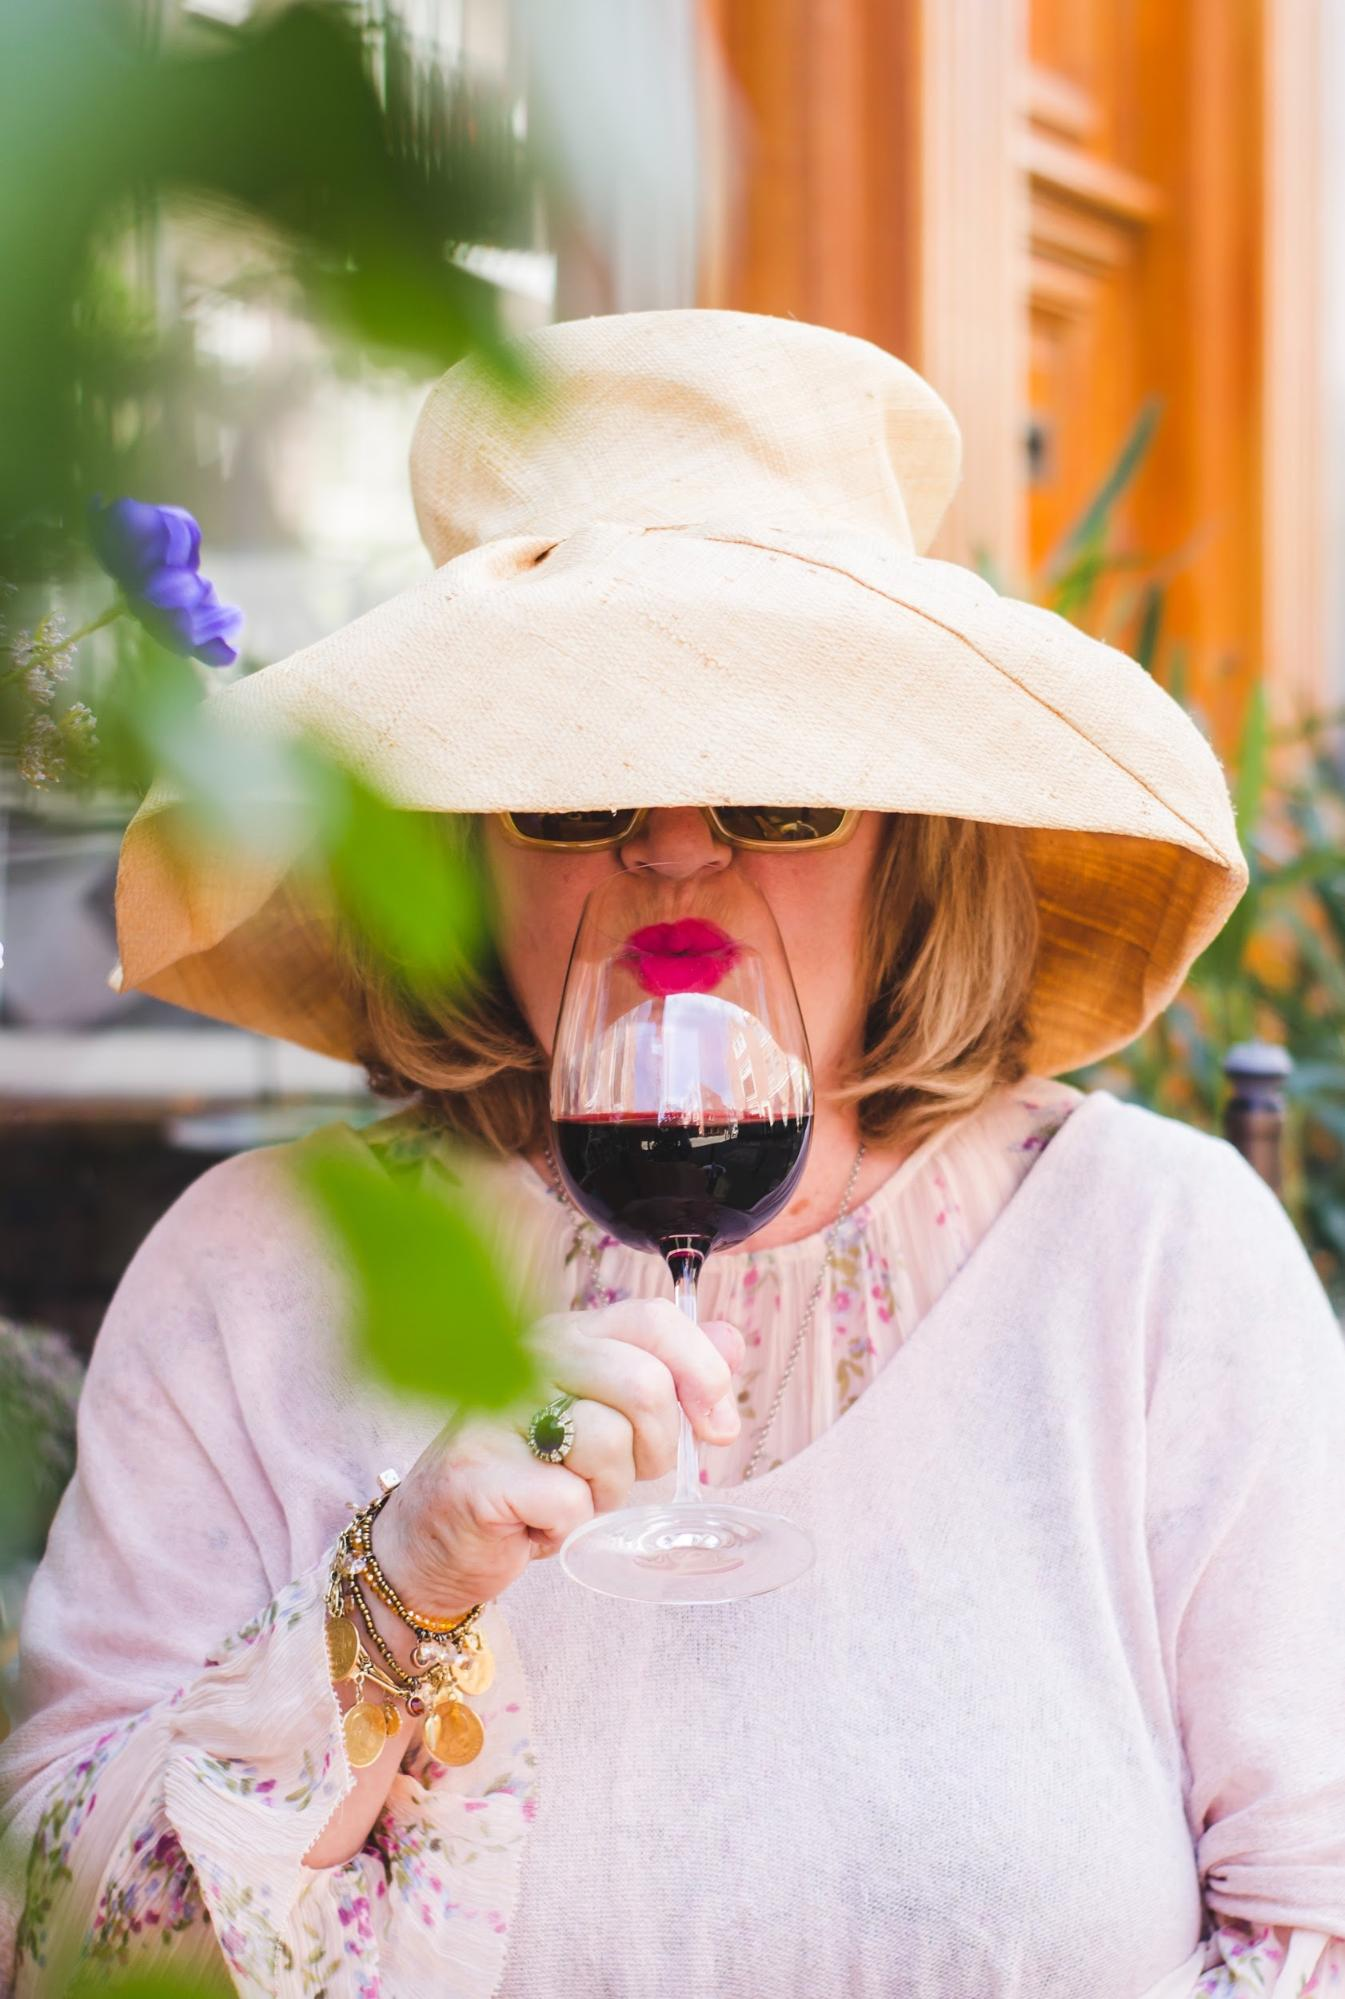 Lady in hat drinking red wine; WSET Level 3 exam